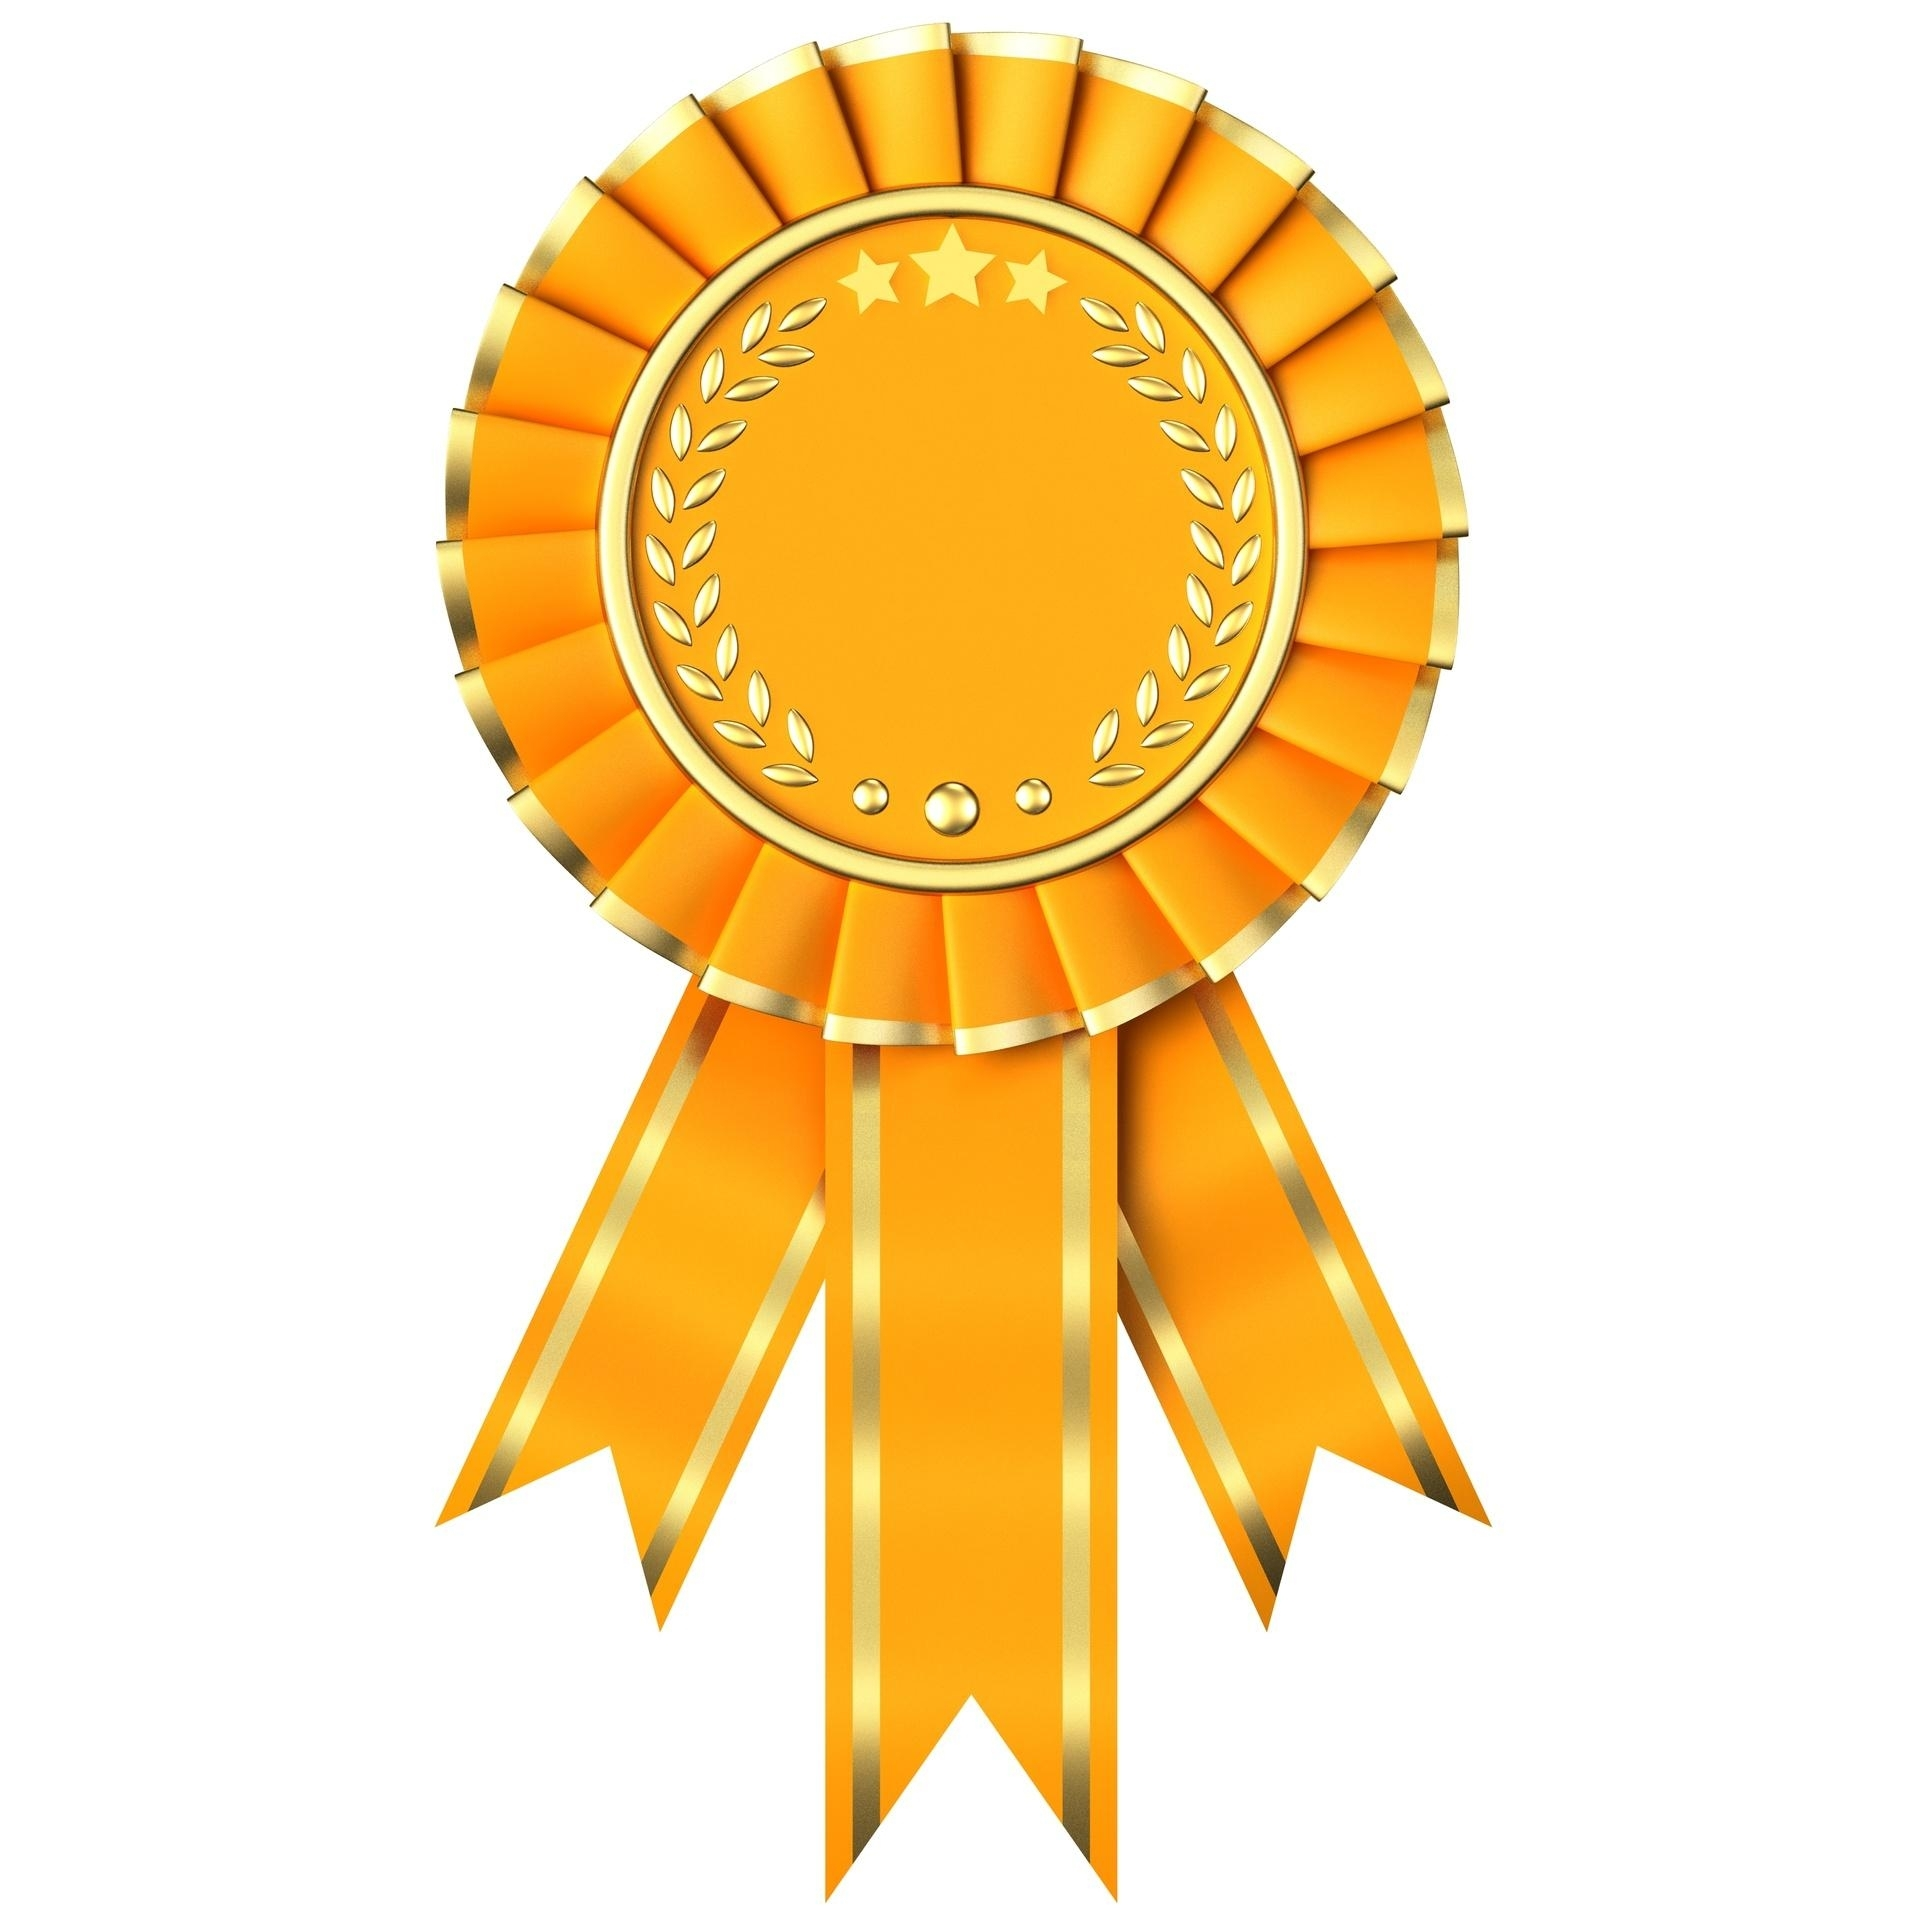 award ribbon generator - Dorit.mercatodos.co